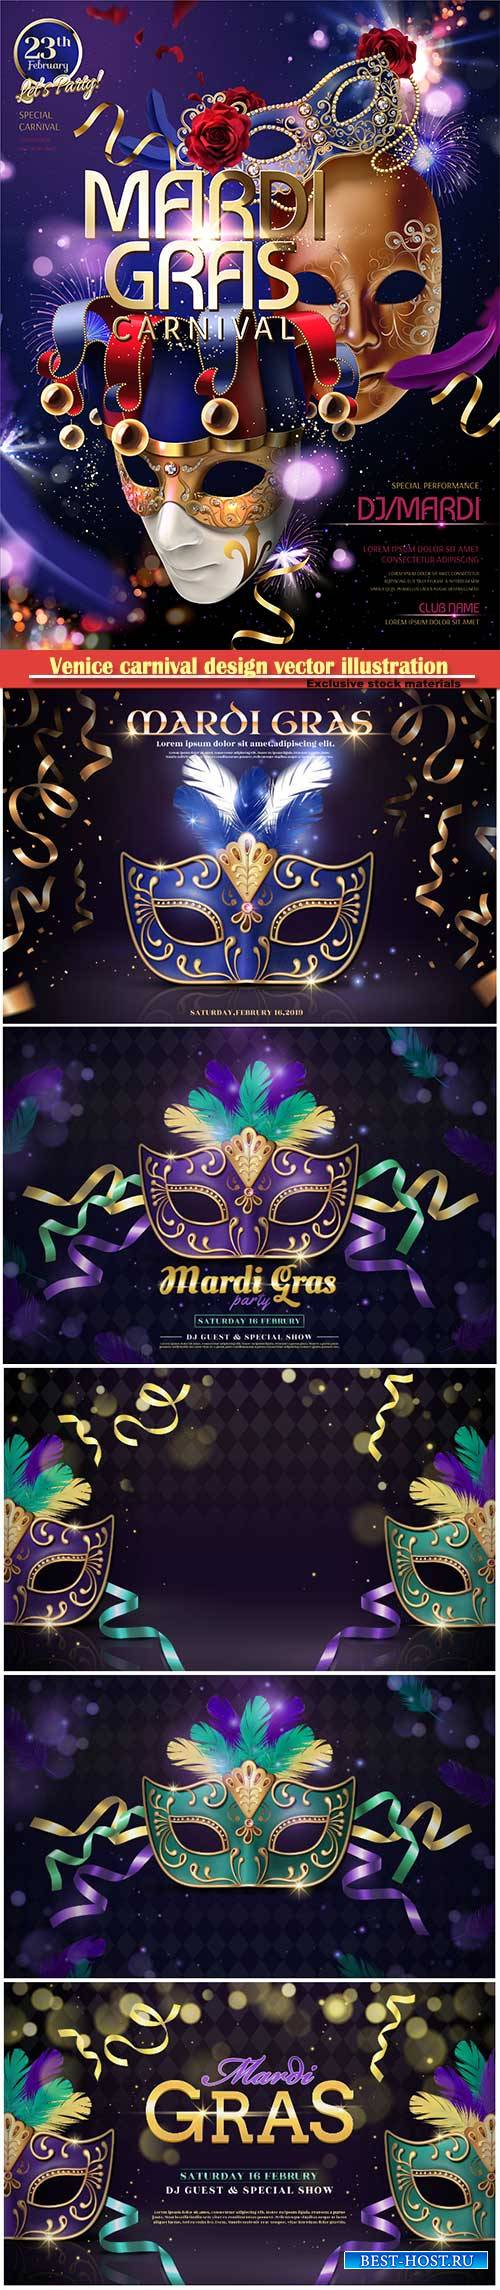 Venice carnival design vector illustration, Mardi gras # 4